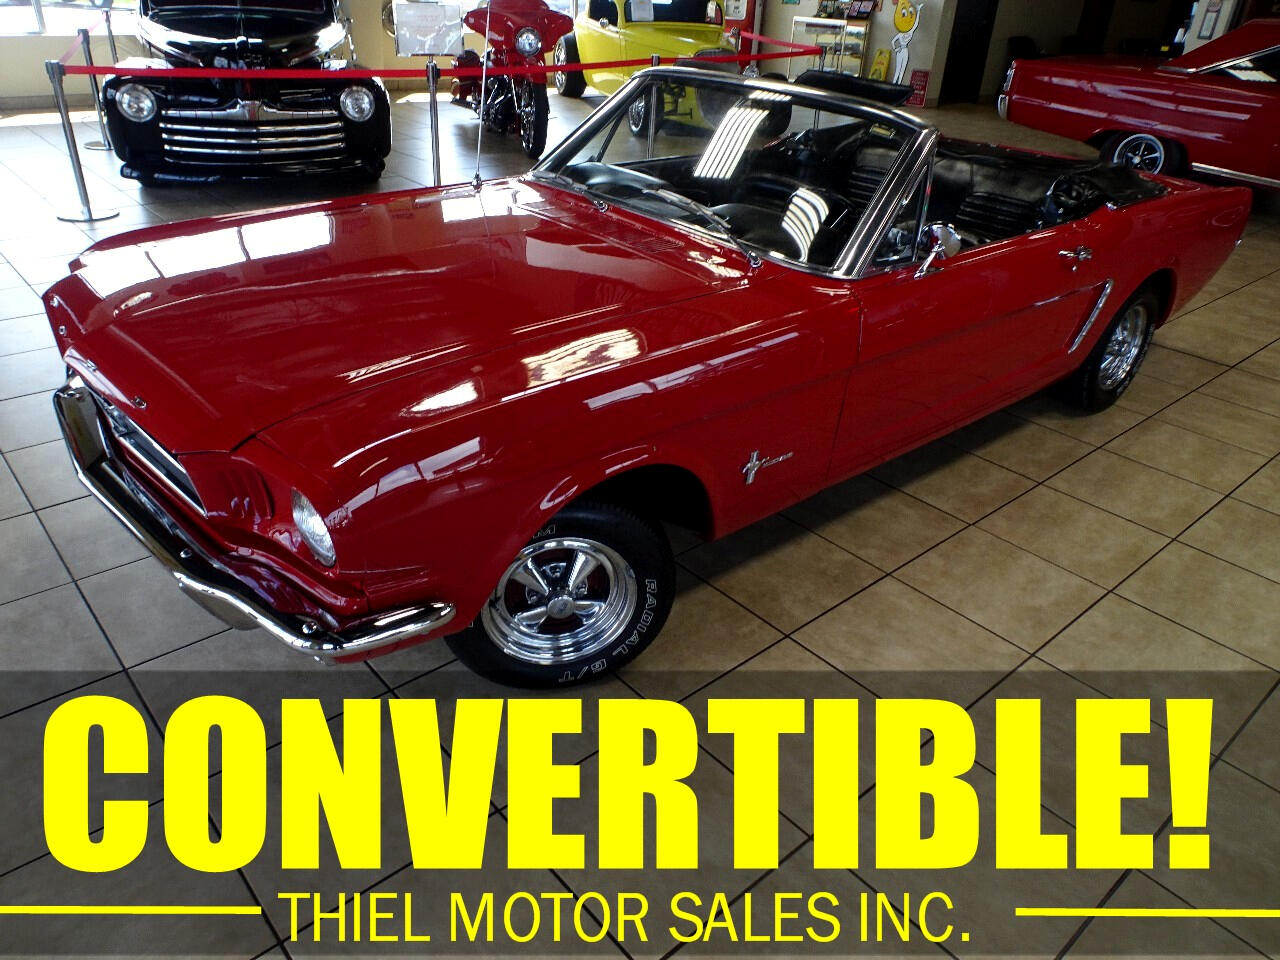 Ford Mustang 2dr Convertible 1965